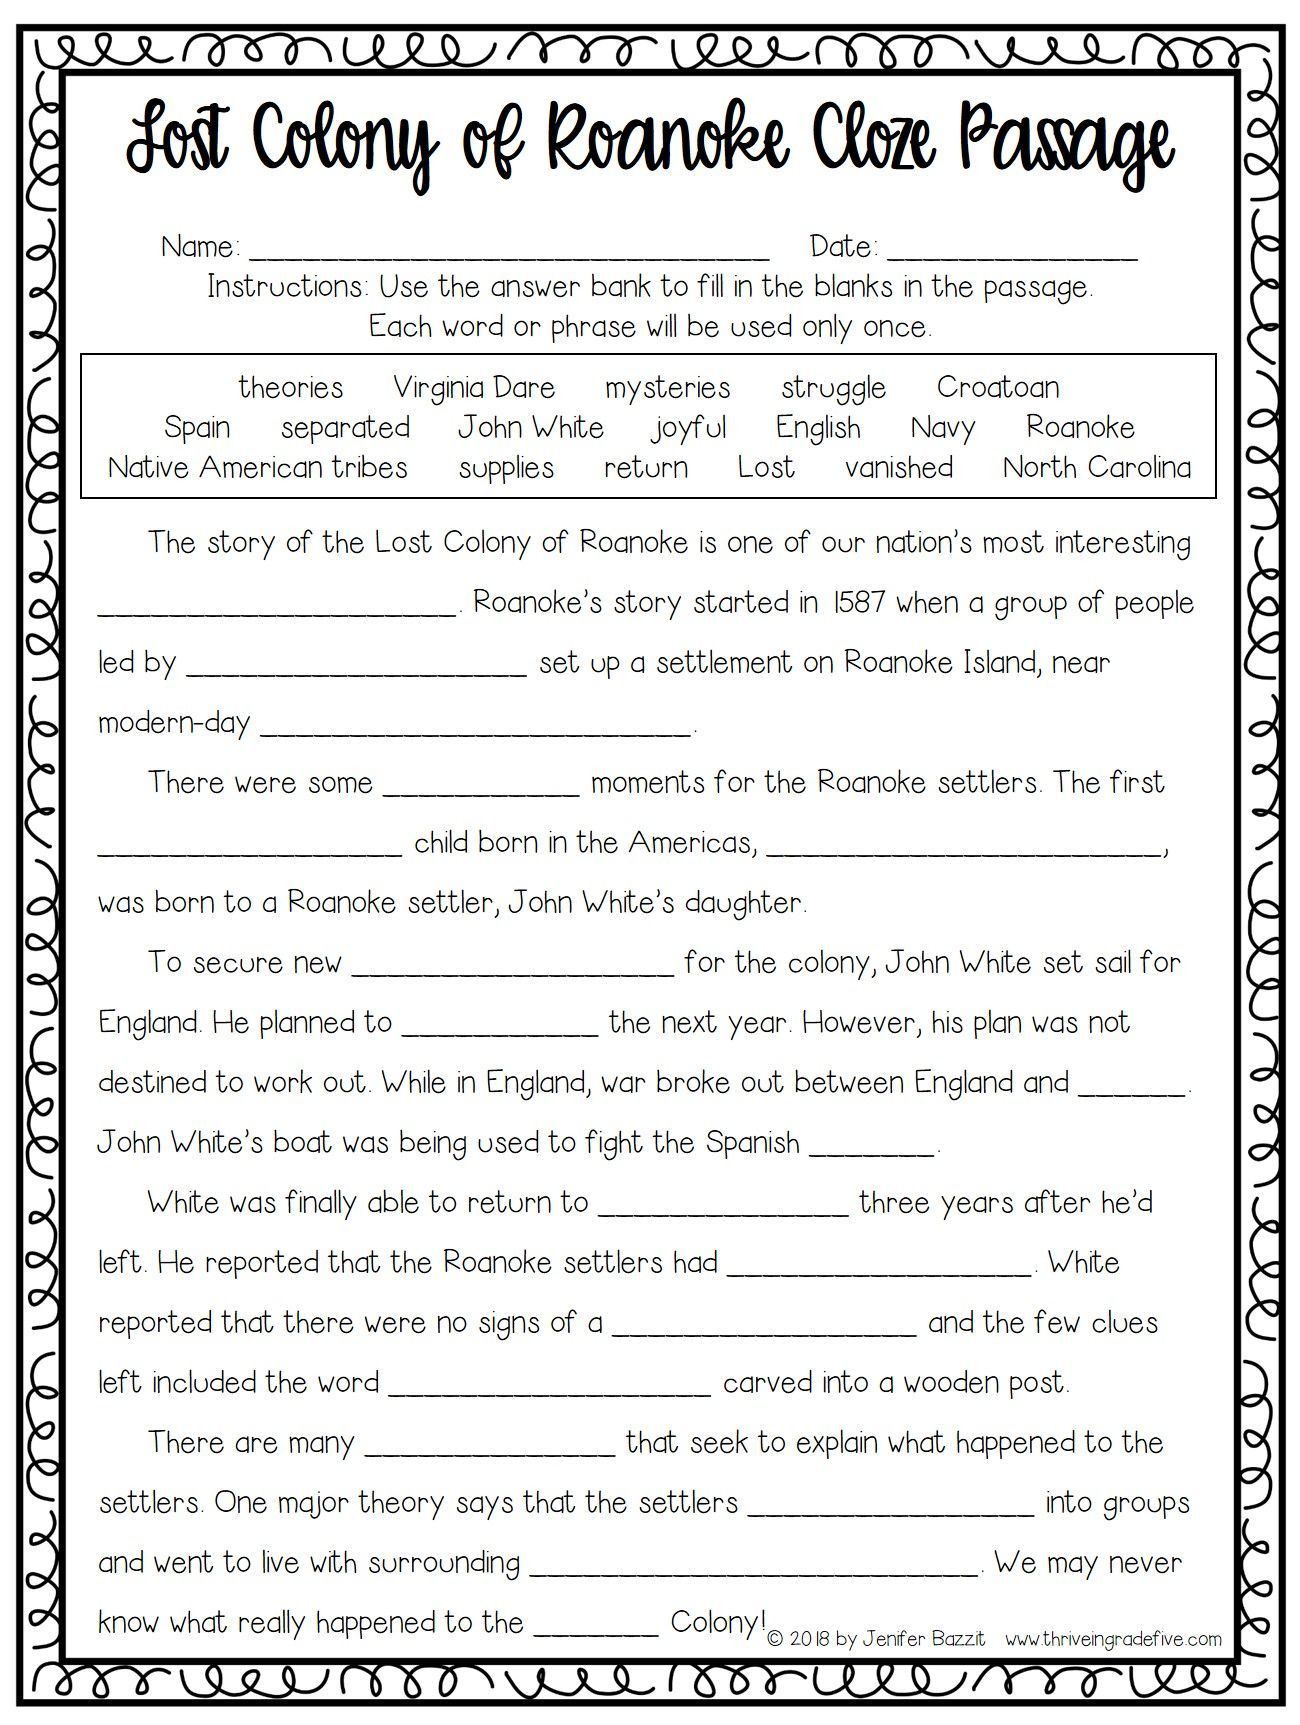 5th Grade History Worksheets Lost Colony Of Roanoke Activity Free